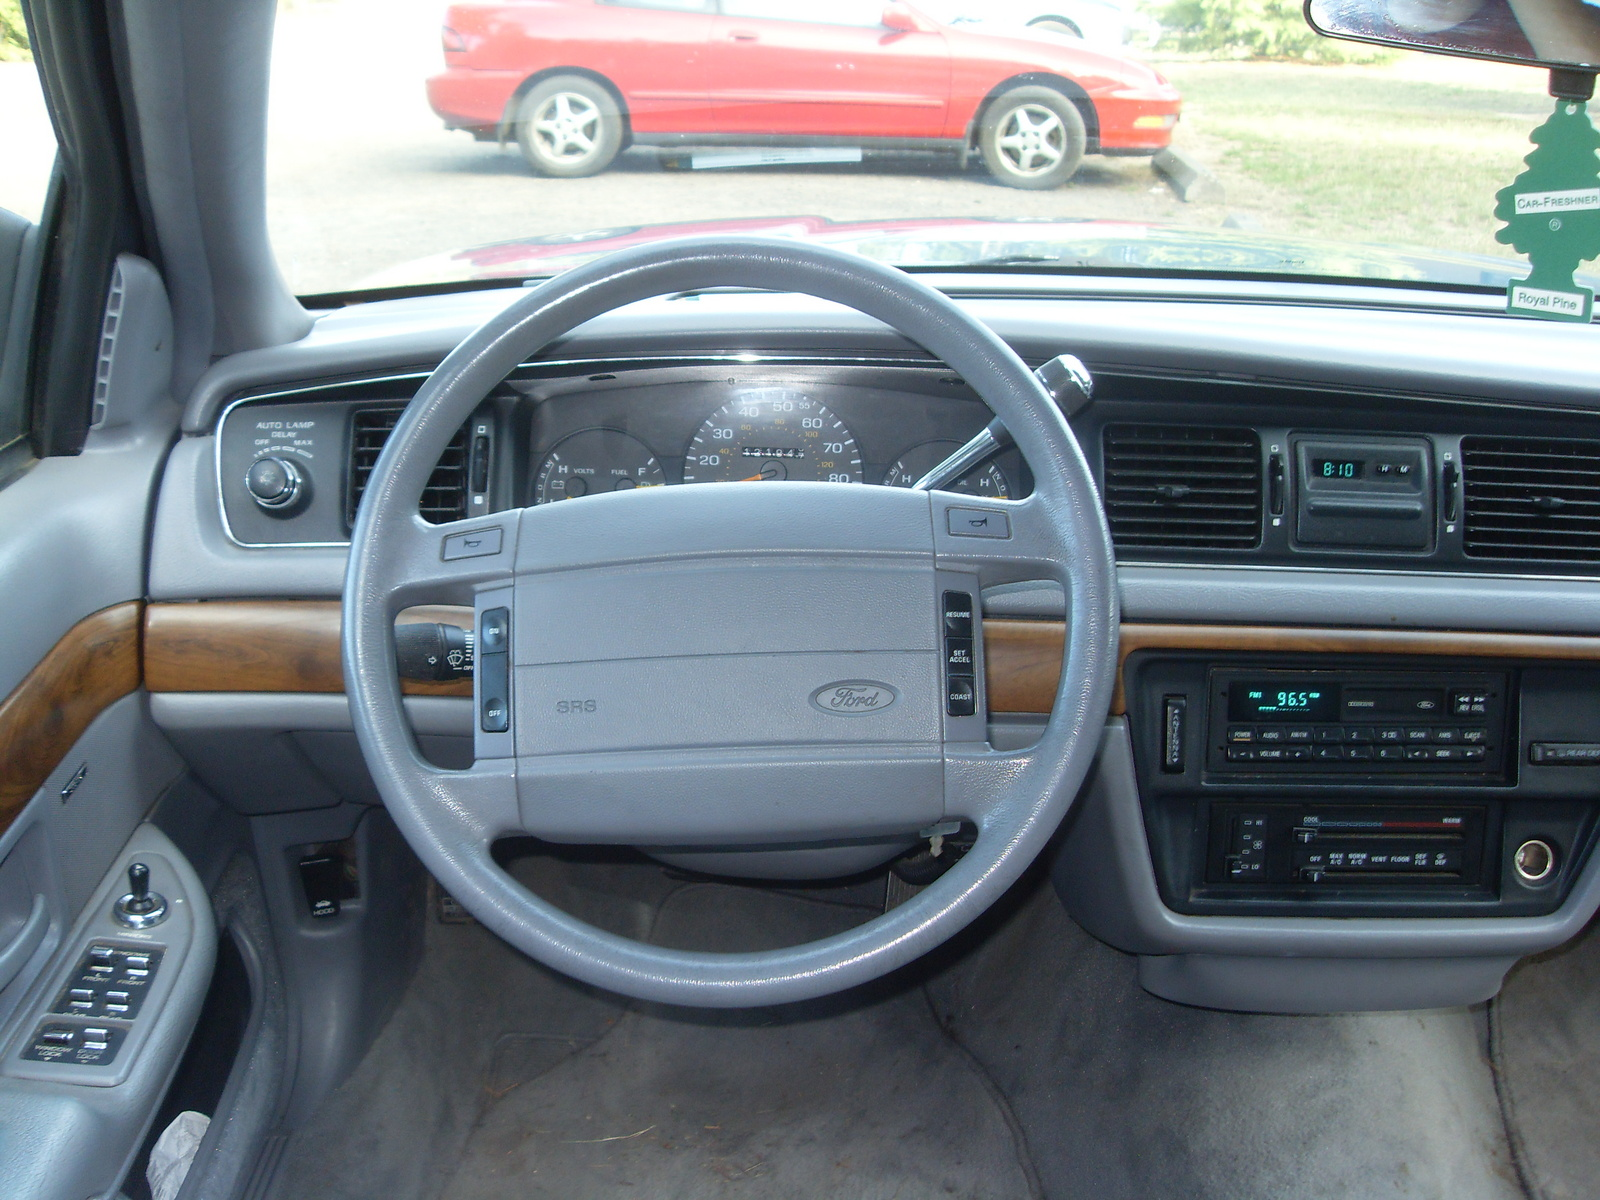 1995 Ford Crown Victoria Interior Cars Gallery Hd Image